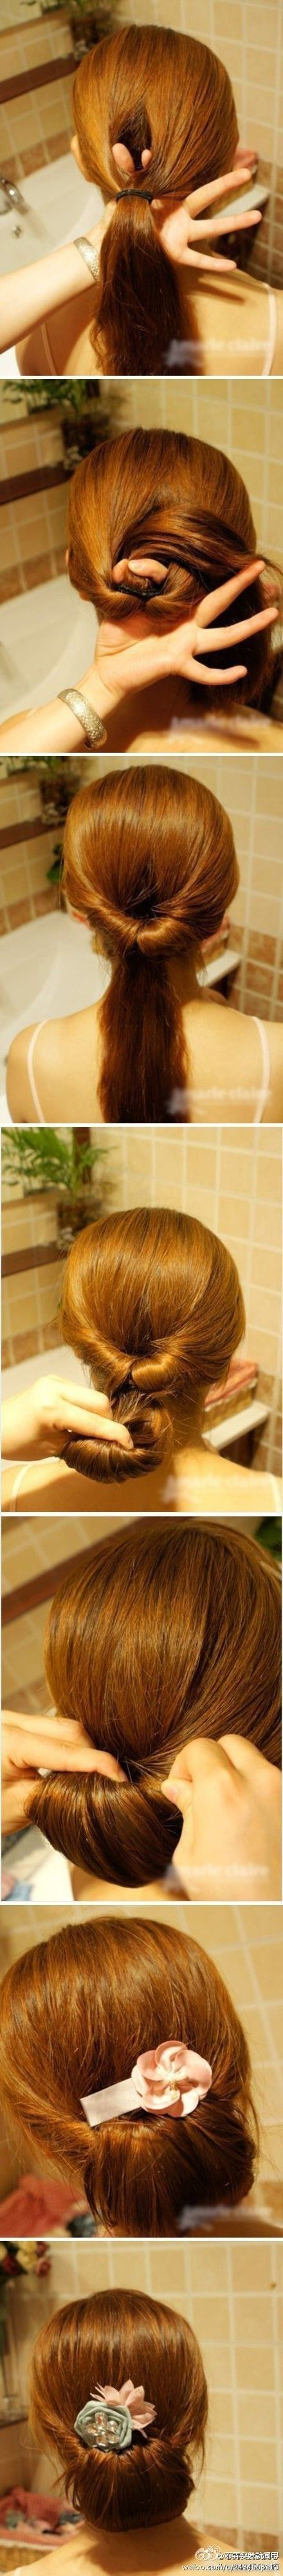 hair: Hair Ideas, Wedding Hair, Bridesmaid Hair, Long Hair, Hairstyle, Hair Style, Updo, Hair Buns, Low Buns